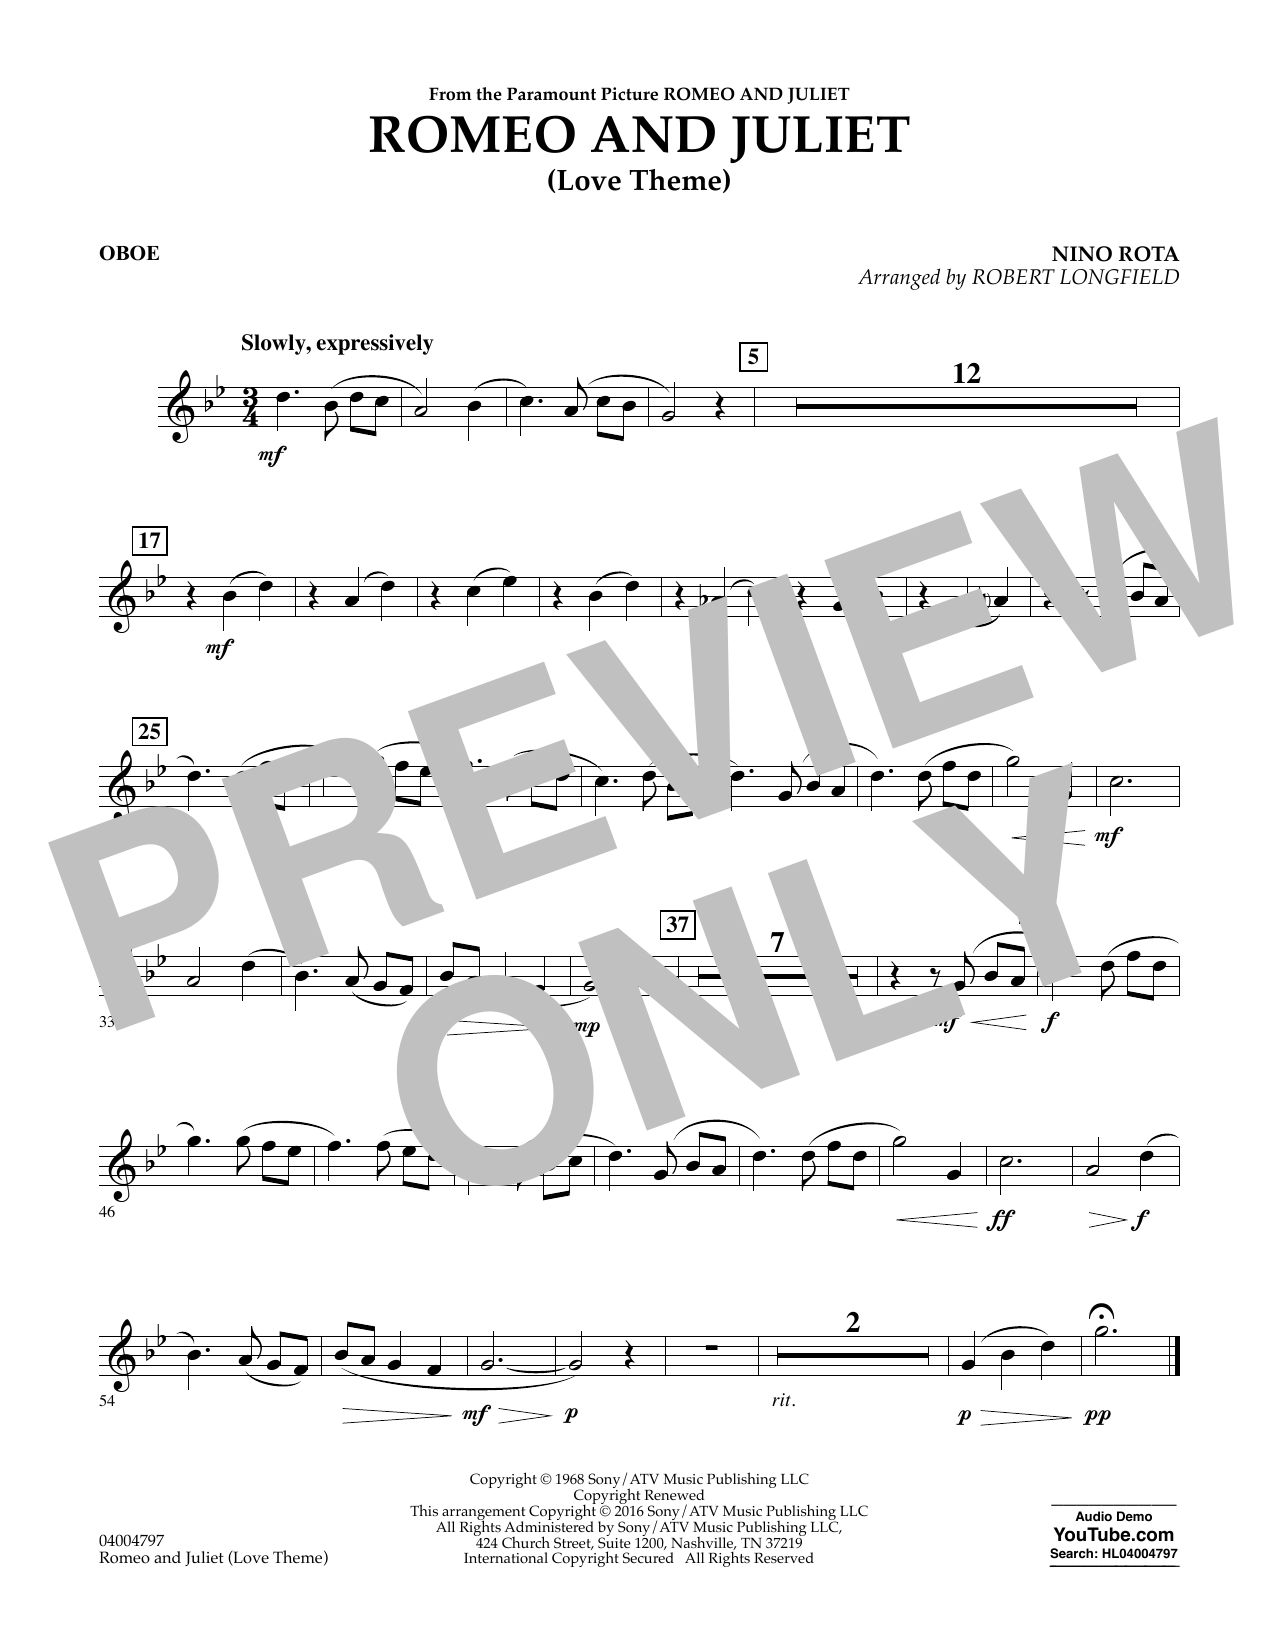 Romeo and Juliet (Love Theme) - Oboe (Concert Band)